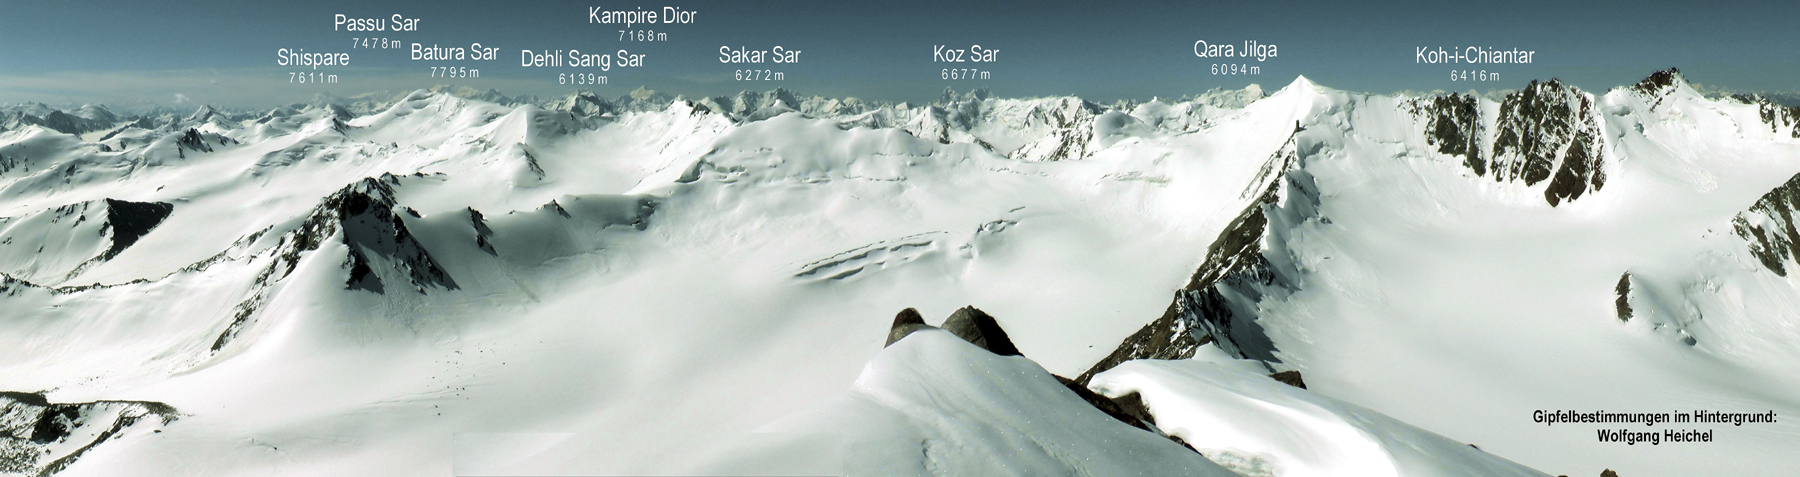 Looking approximately southwest from summit of Koh-e-Elgha Eli IV.  High background peaks identified.